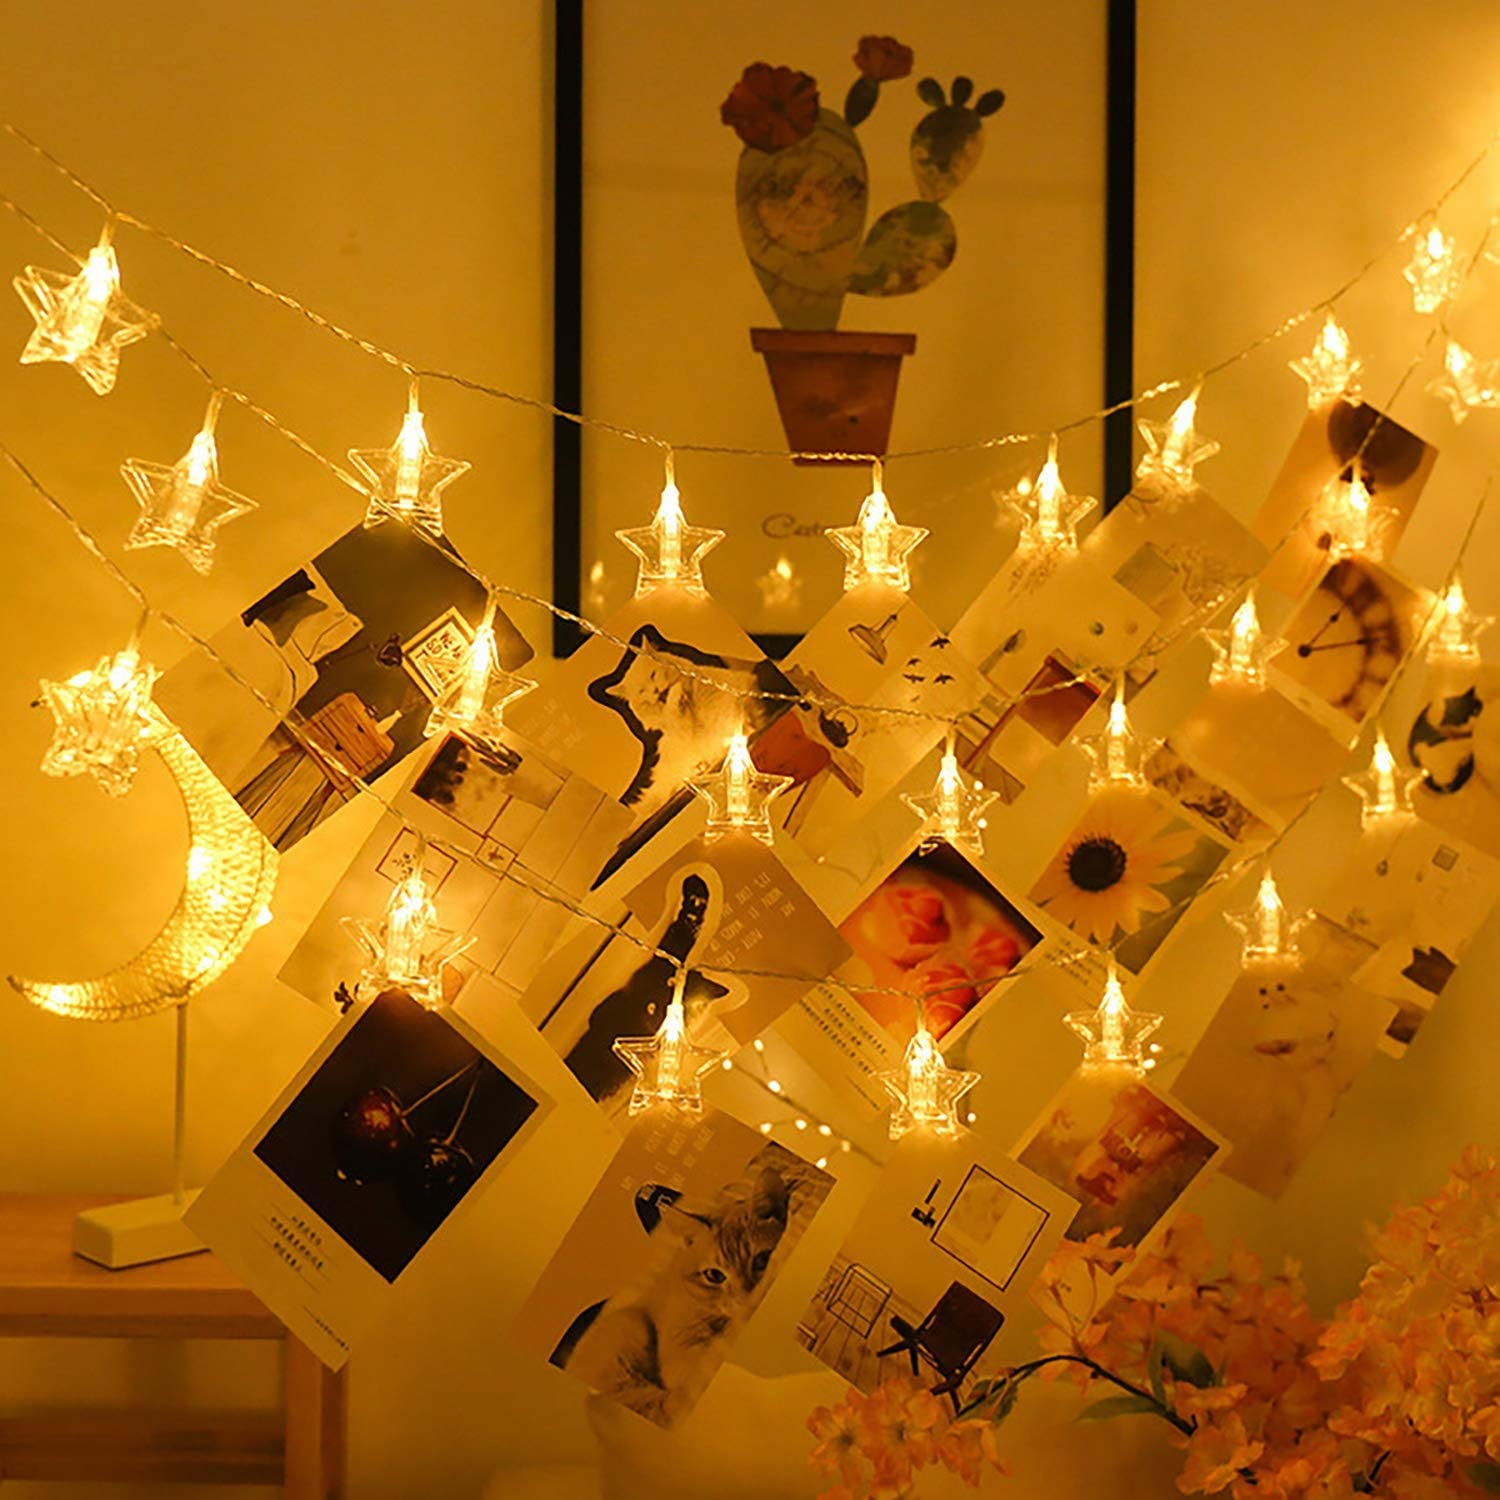 Funpeny Photo Clips String Lights Cards Warm White 20LED Star Christmas Indoor Wall Lights Girls Bedroom Decoration with Clips for Hanging Pictures Artwork